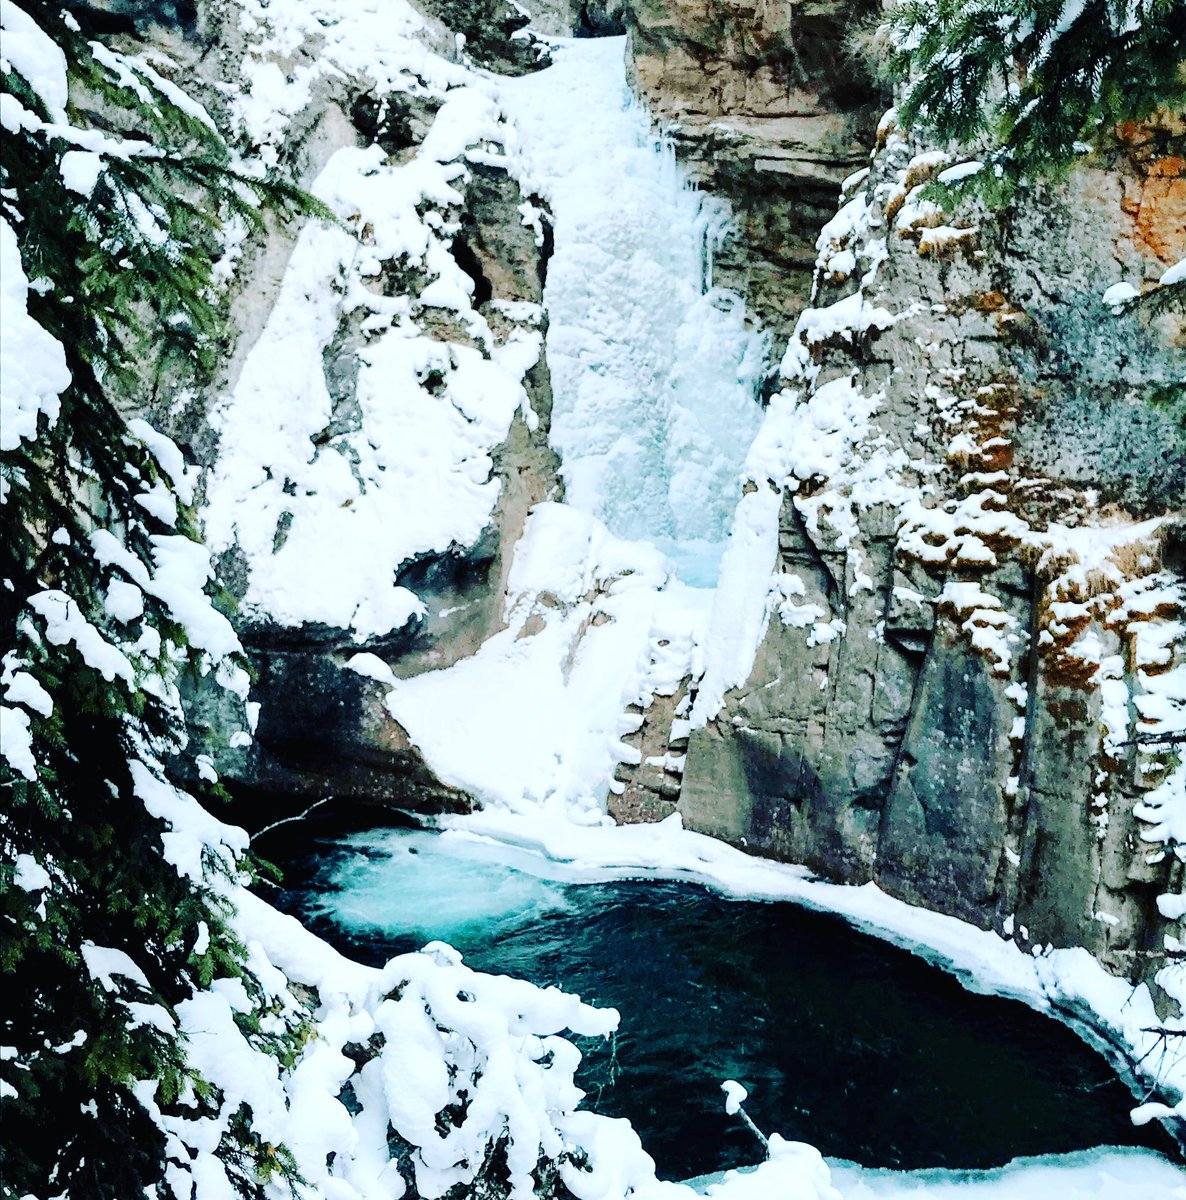 The ice and water in Johnston Canyon have the most amazing colours.  . .  #johnstoncanyon #banff #canada #alberta #banffnationalpark #travel #hiking #explorealberta #waterfall #nature #travelalberta #waterfalls #hike #canadianrockies #mountains #explore #banffcanada #beautifulpic.twitter.com/xpM61TP1eb